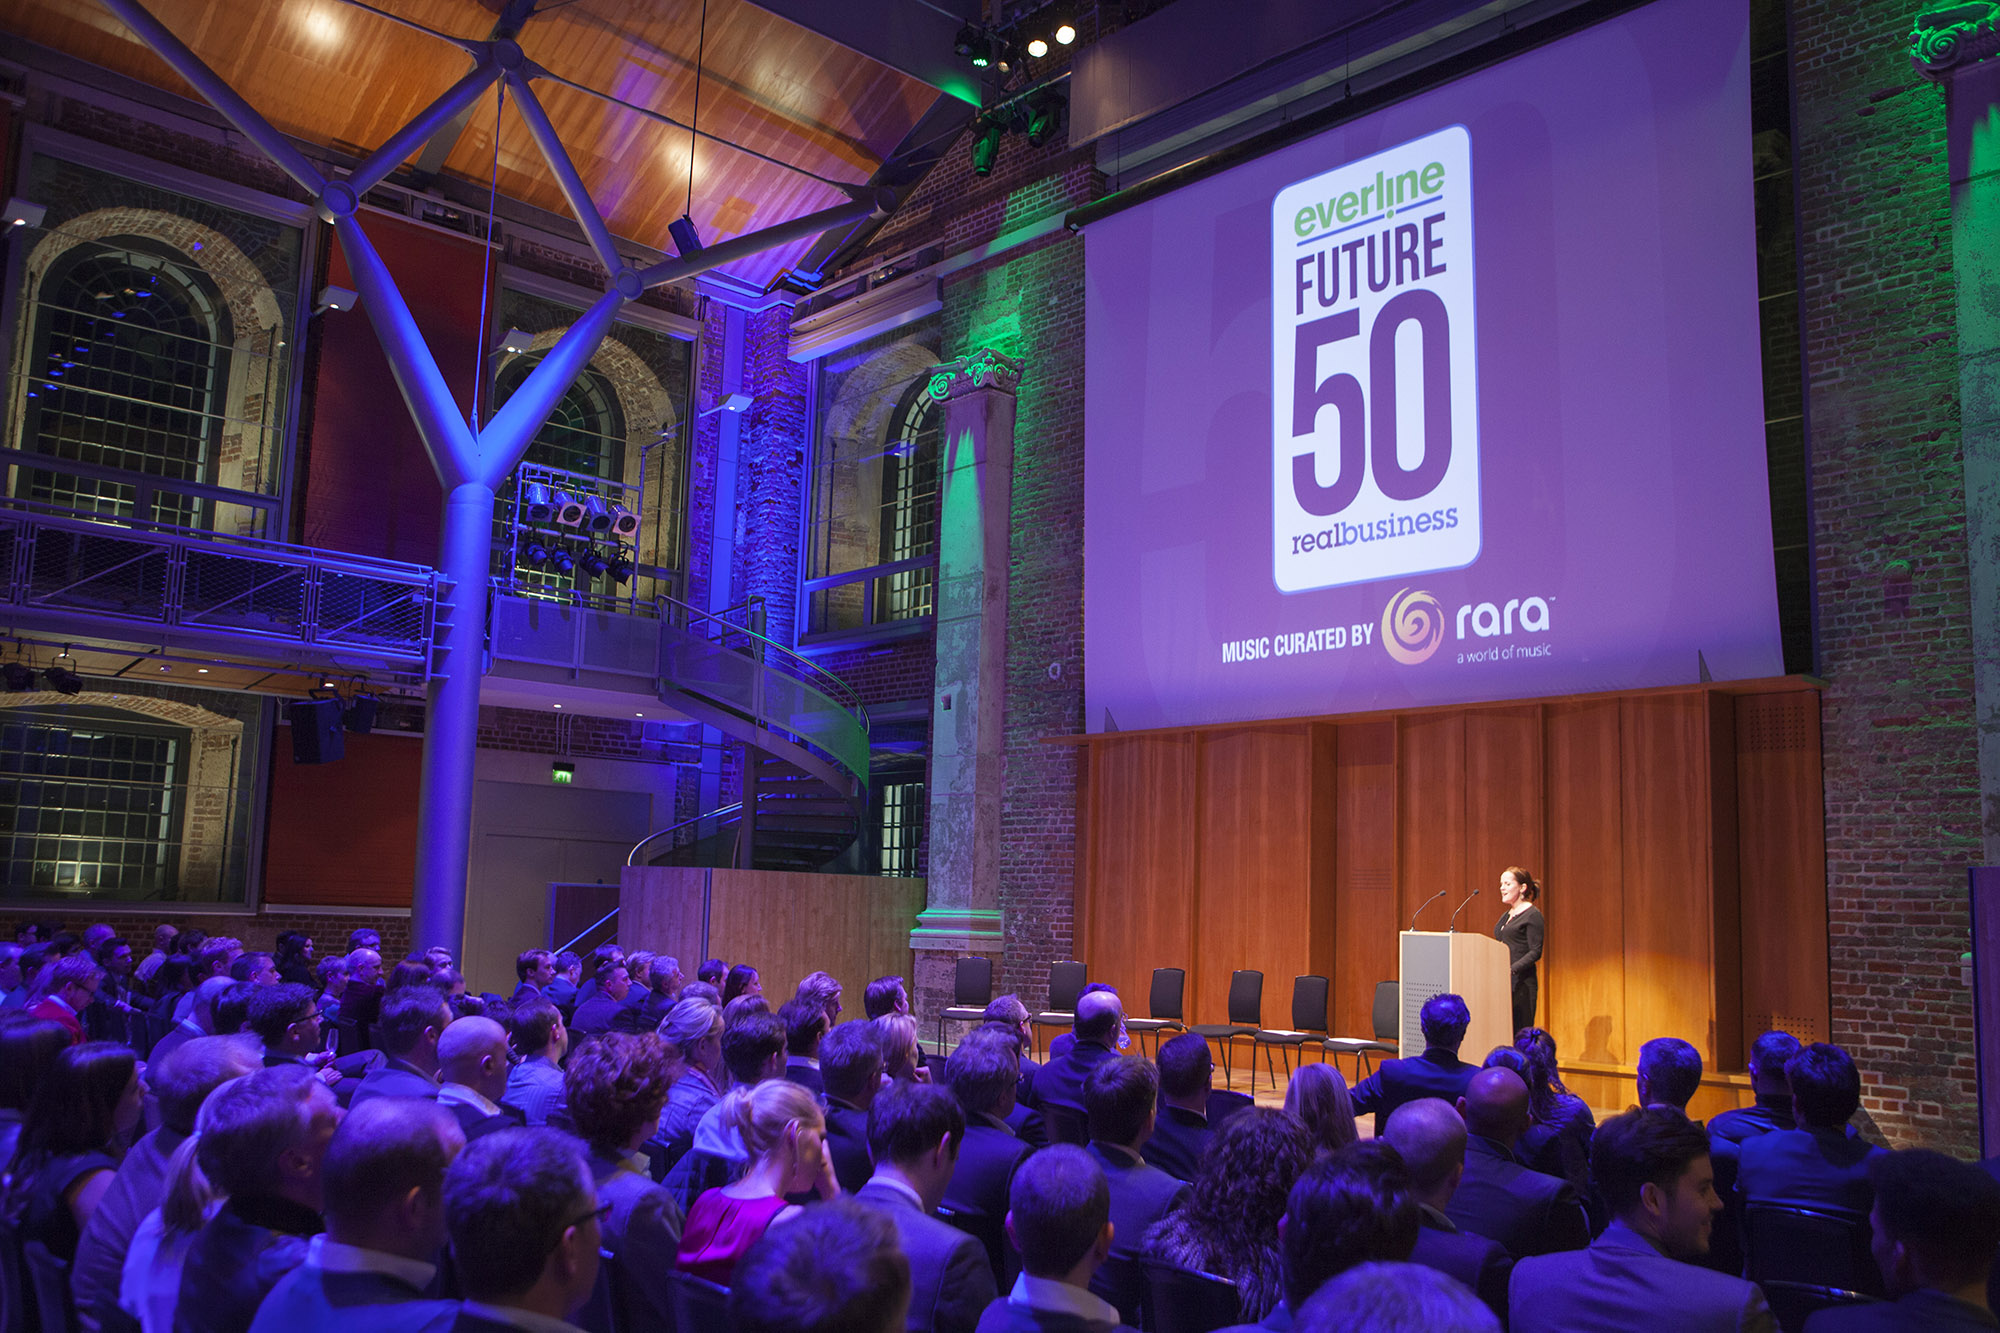 Everline Future 50: Britain's most disruptive new businesses revealed